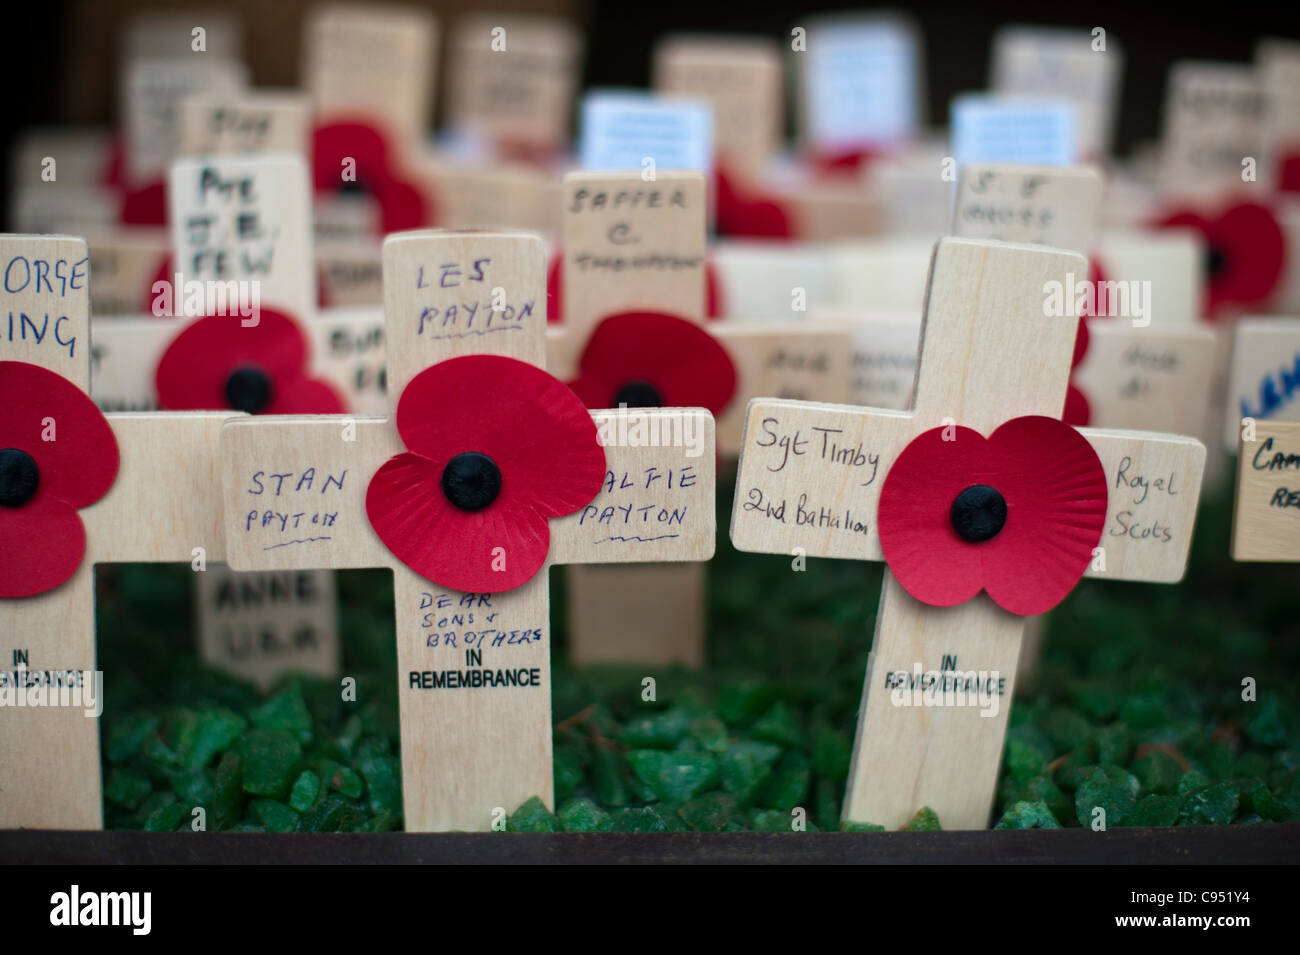 Remembrance day crosses and poppies close up - Stock Image